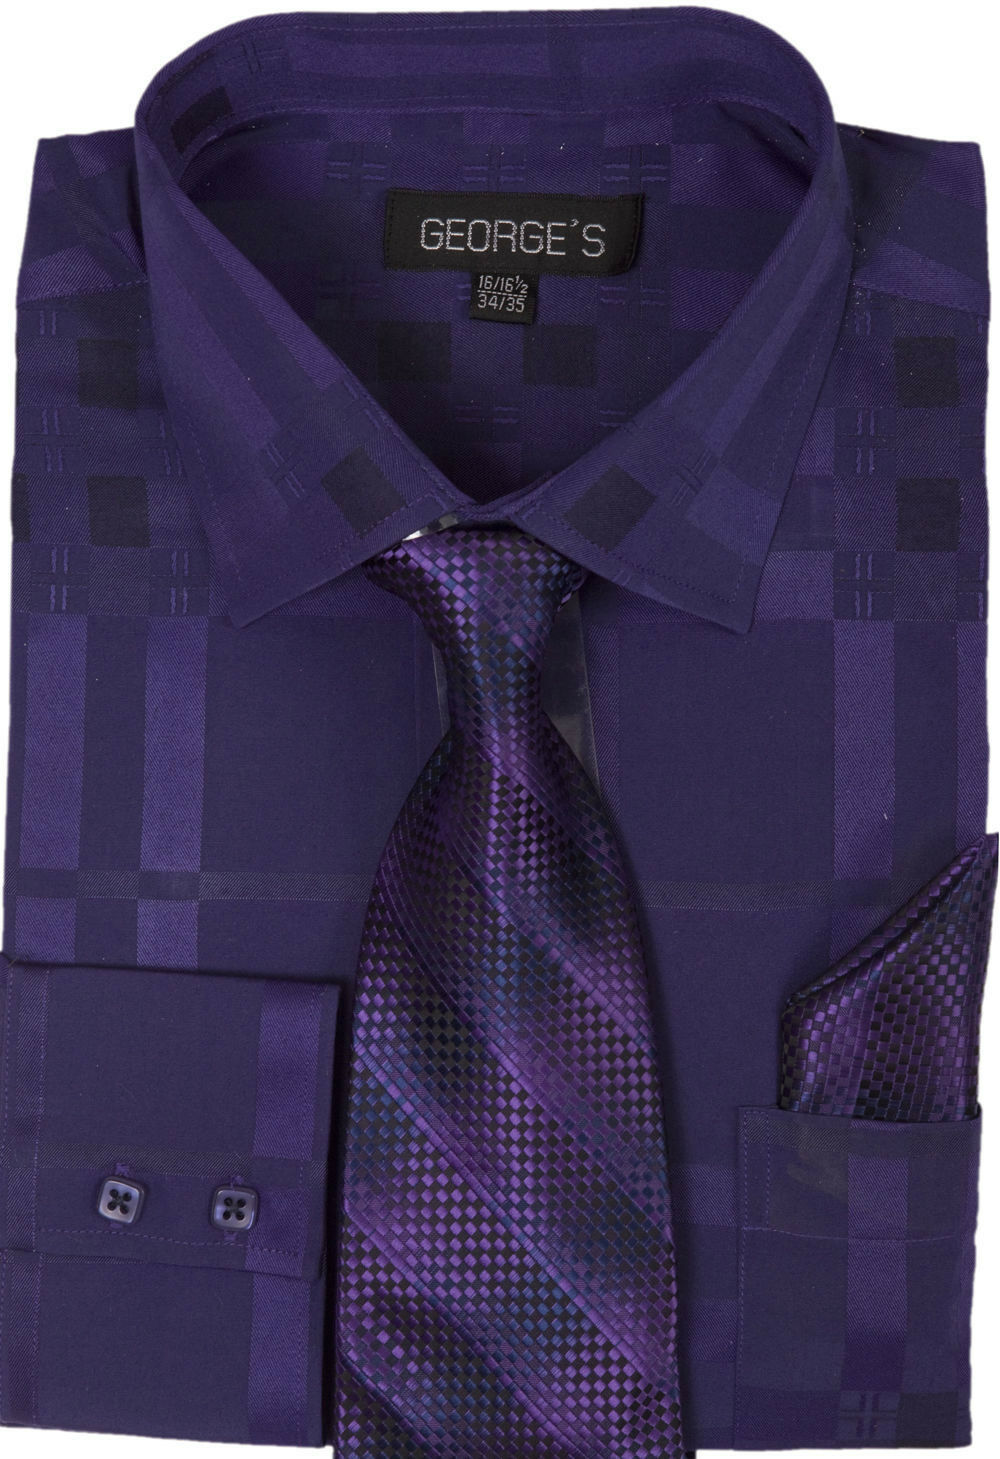 Milano Moda Men Shirt AH623-Purple - Church Suits For Less